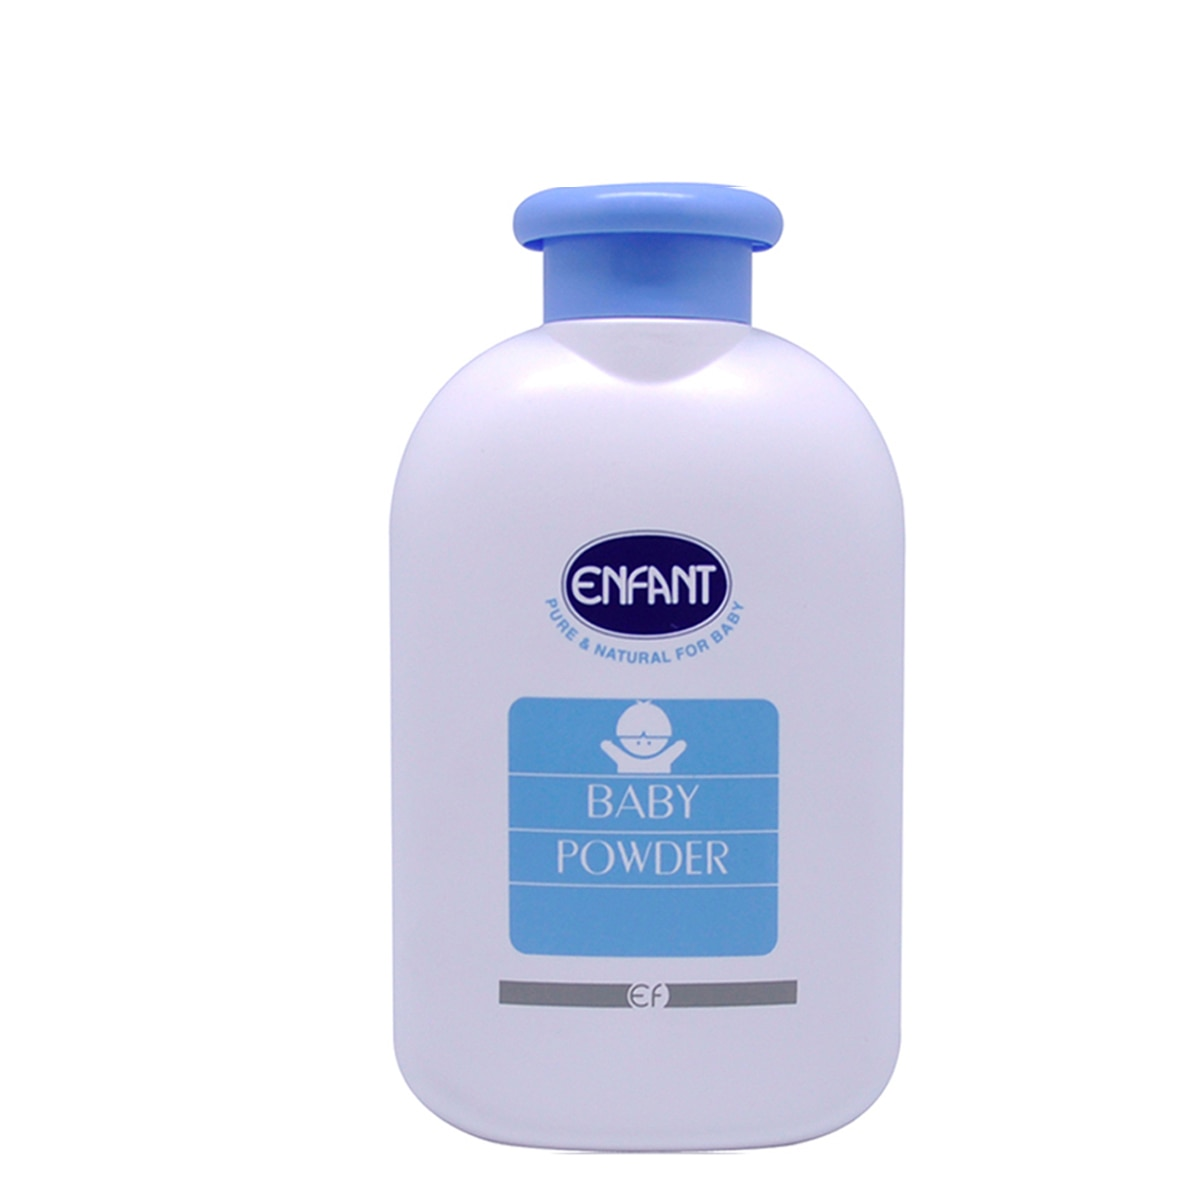 Pure & Natural For Baby Baby Powder 300g